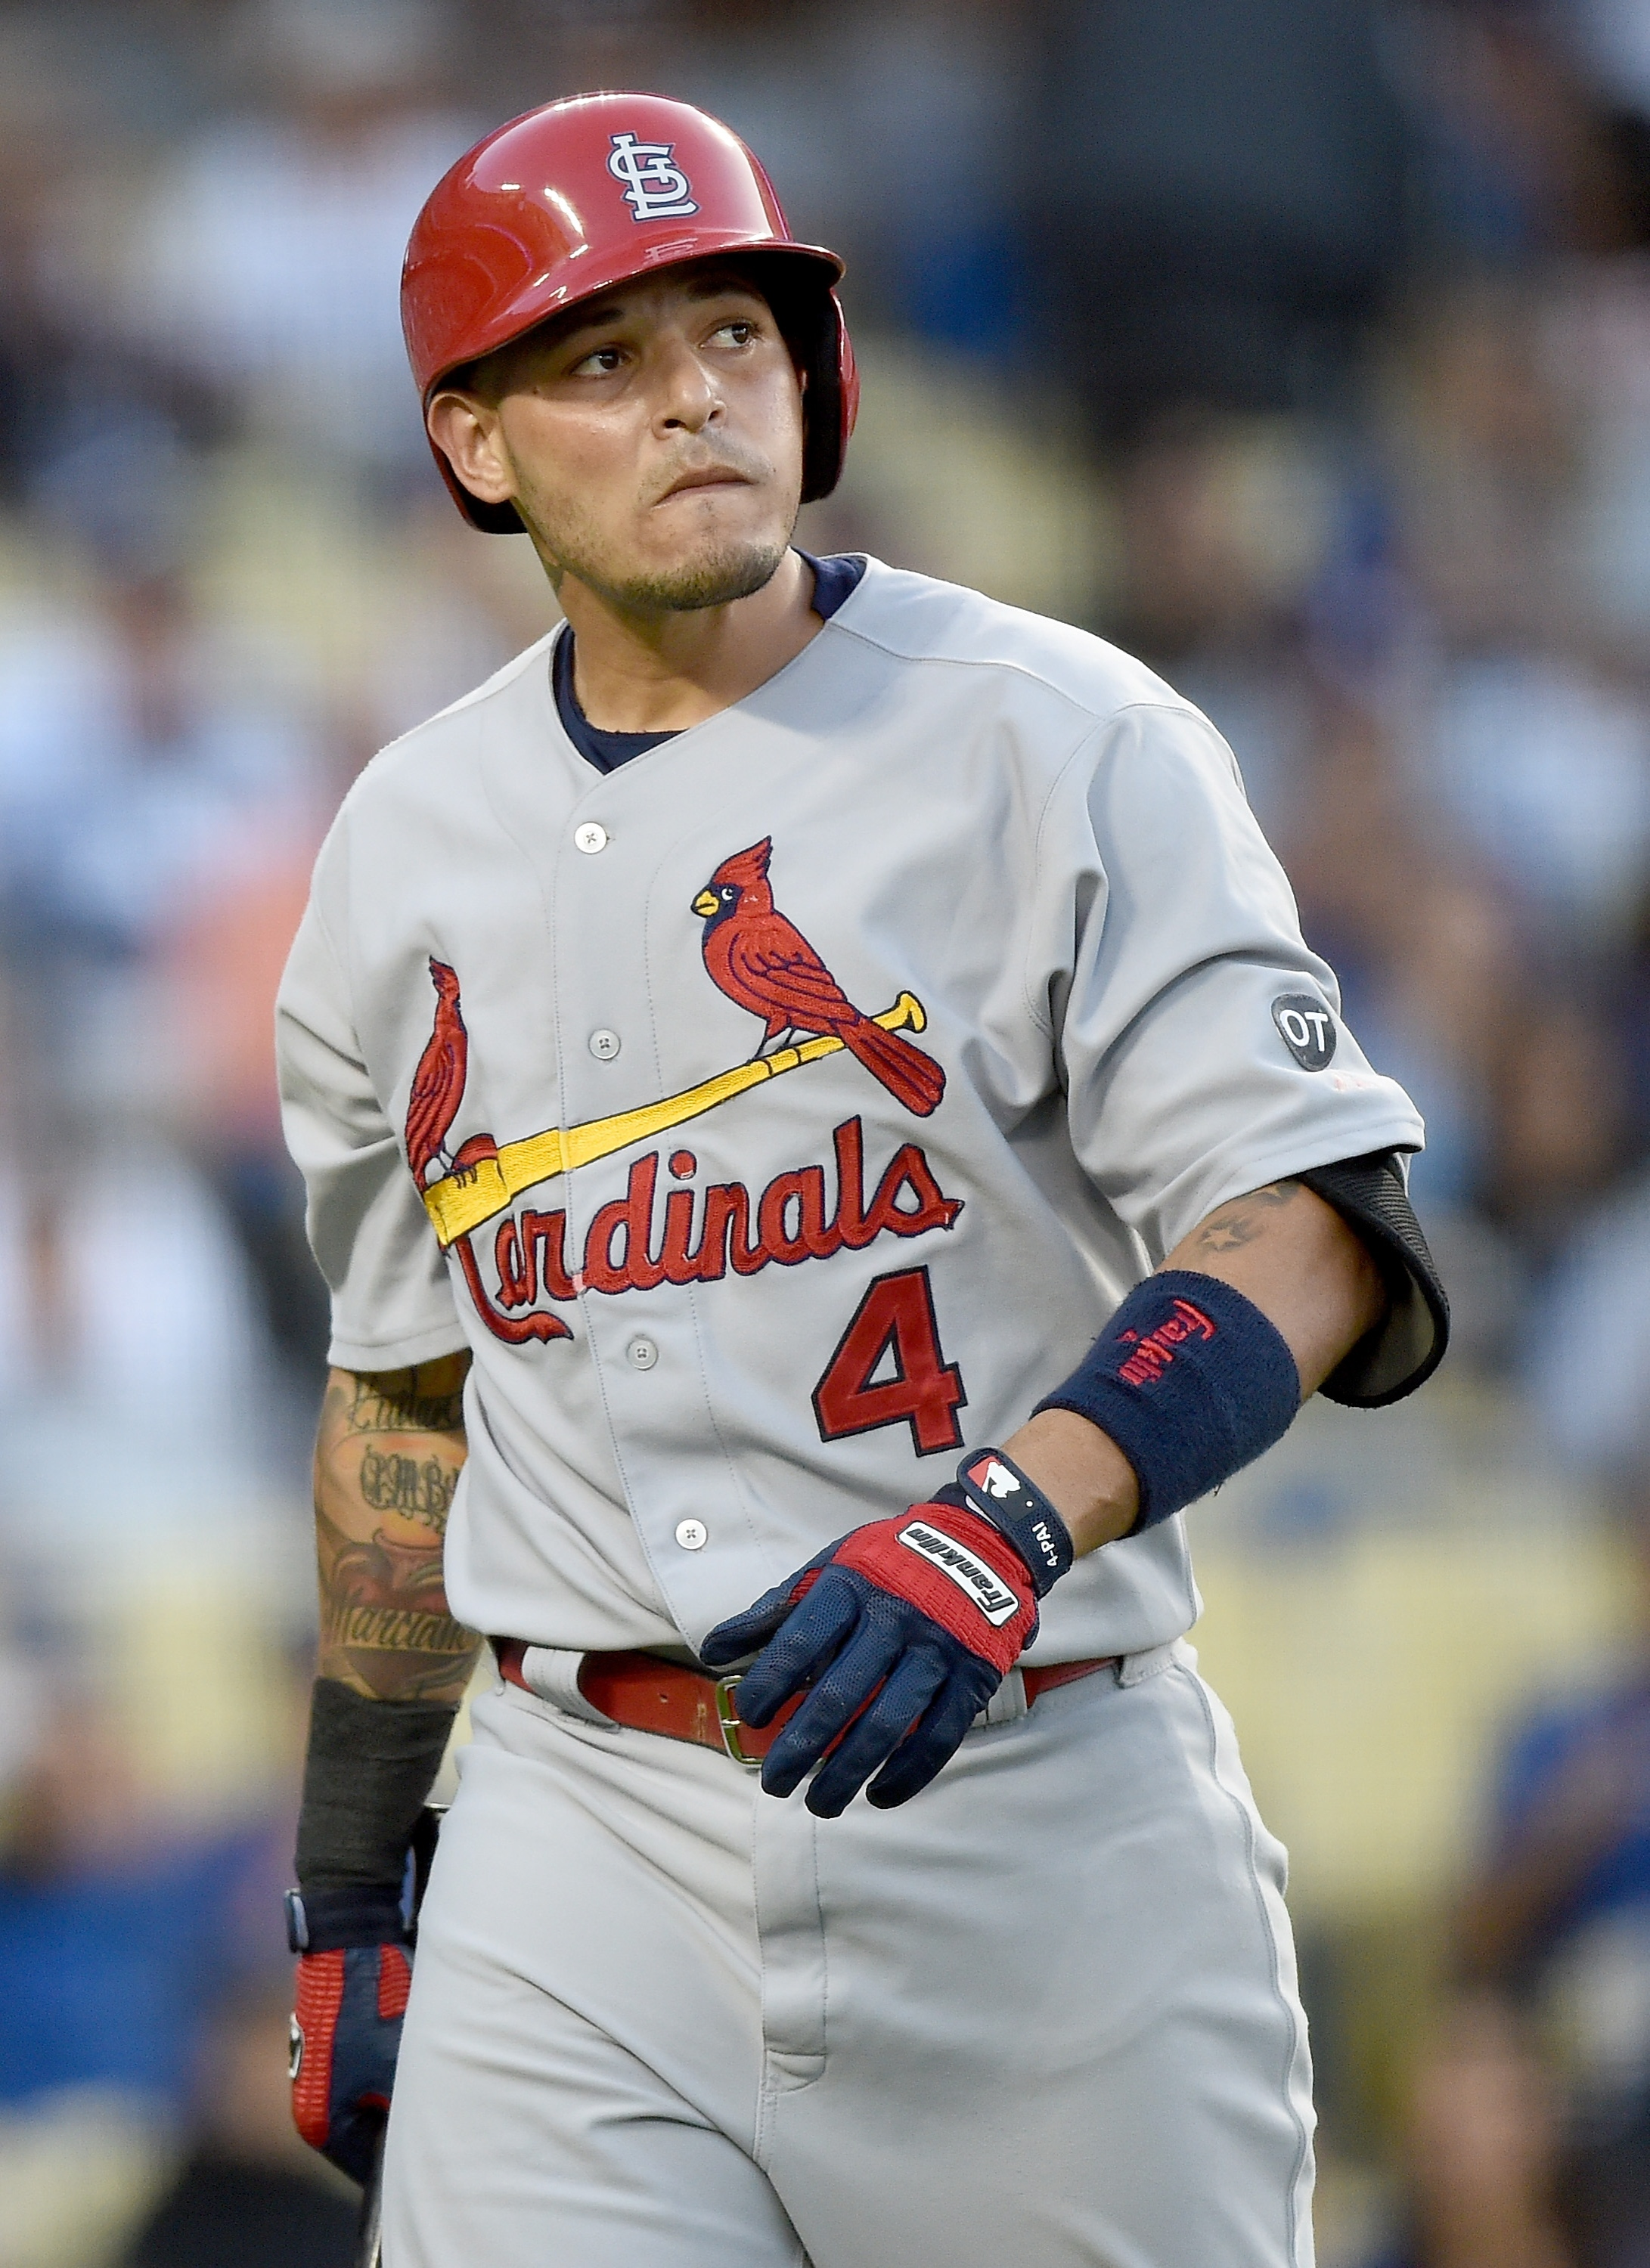 Molina in thought (Harry How/Getty Images)